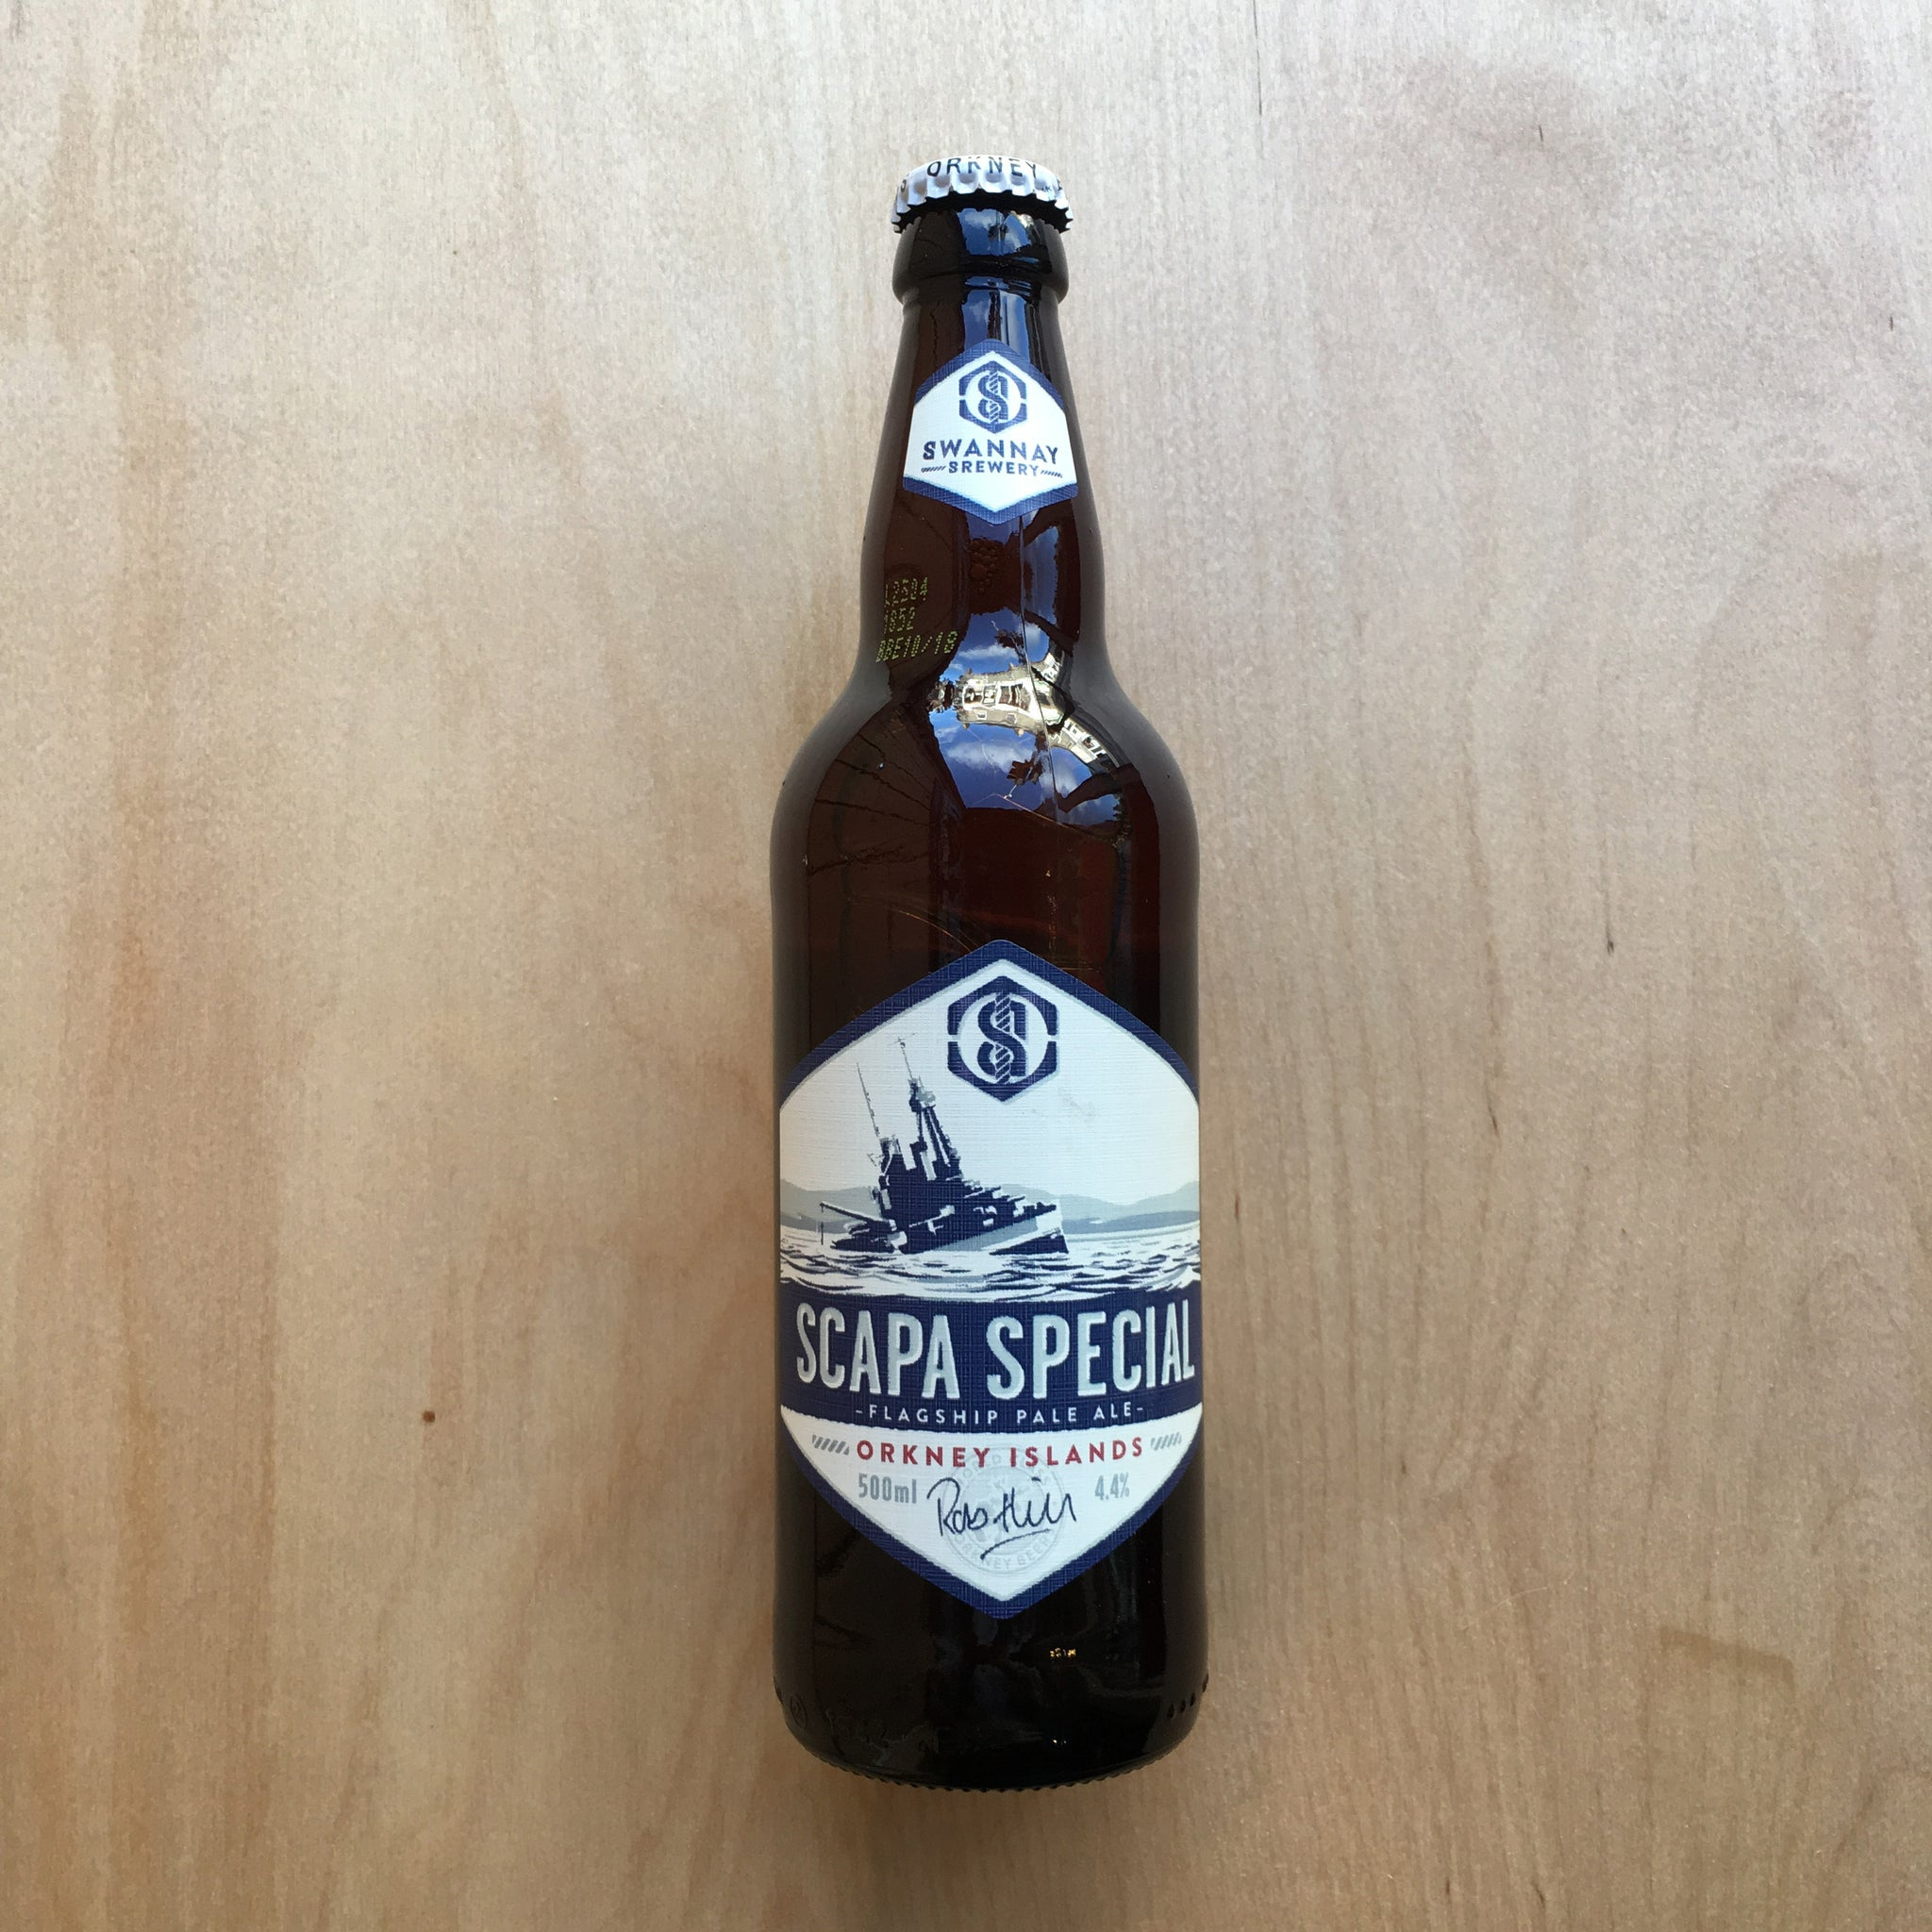 Swannay - Scapa Special 4.2% (500ml)